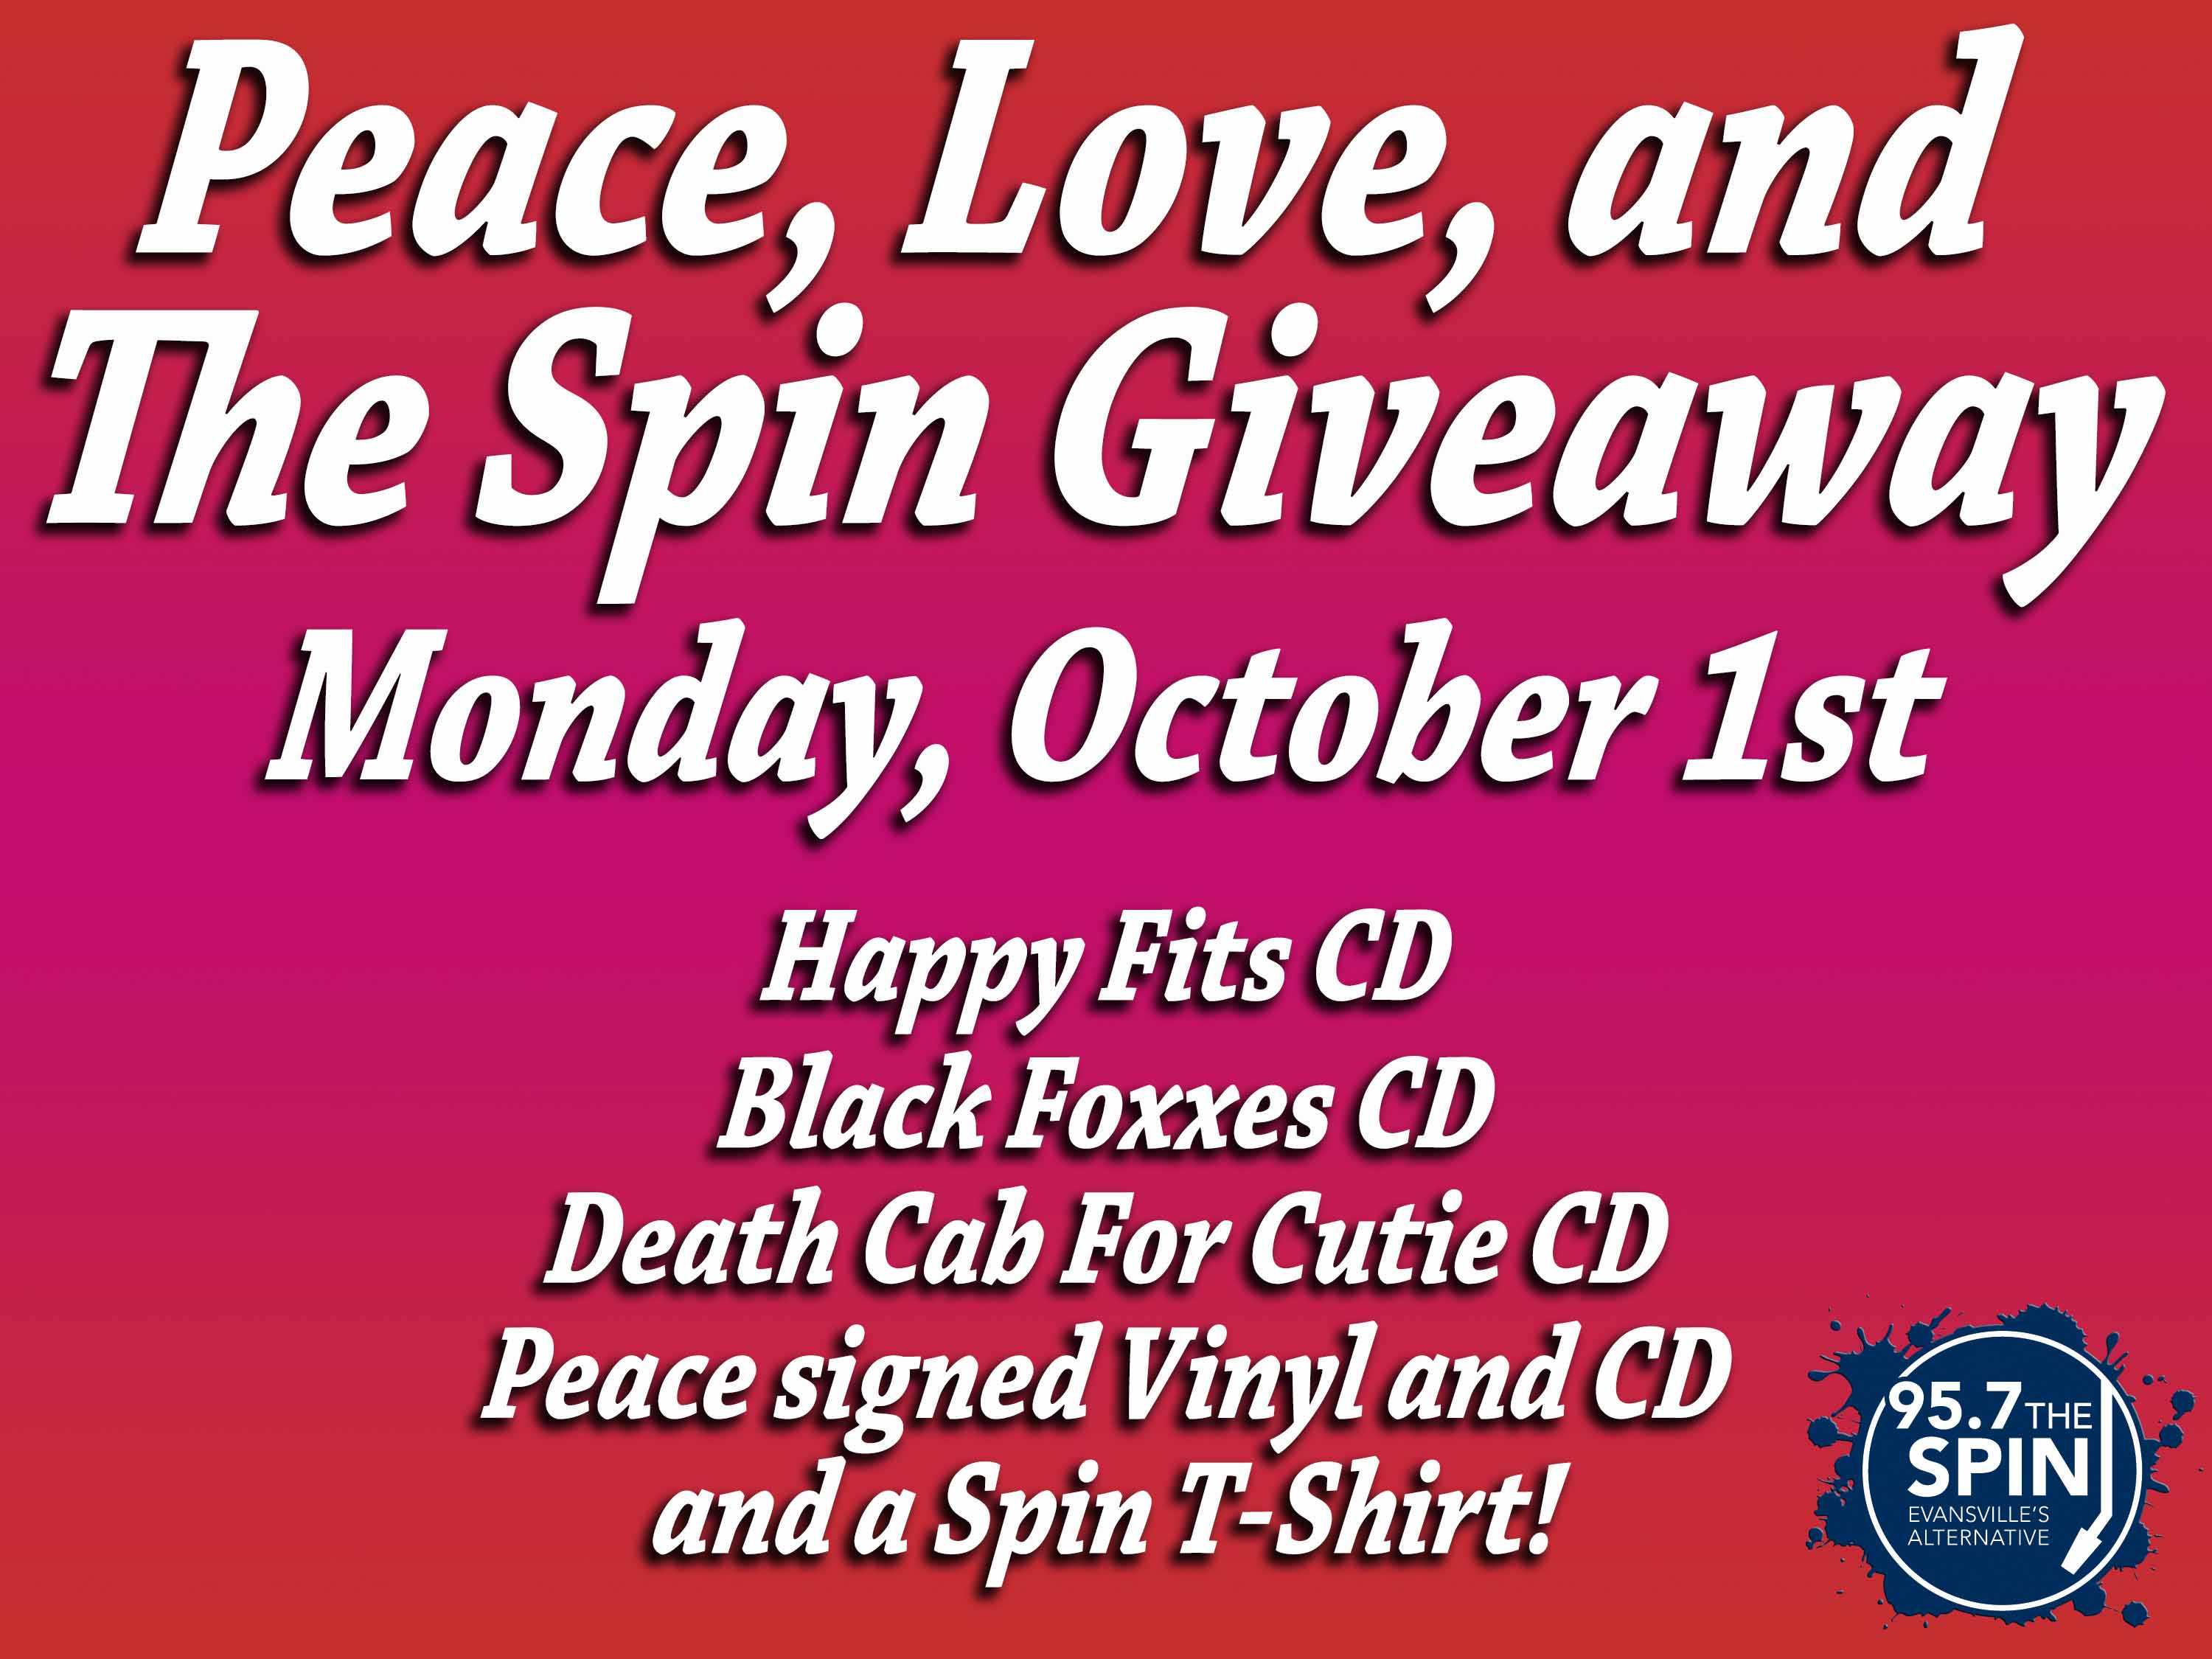 PeaceLoveAndTheSpinGiveaway